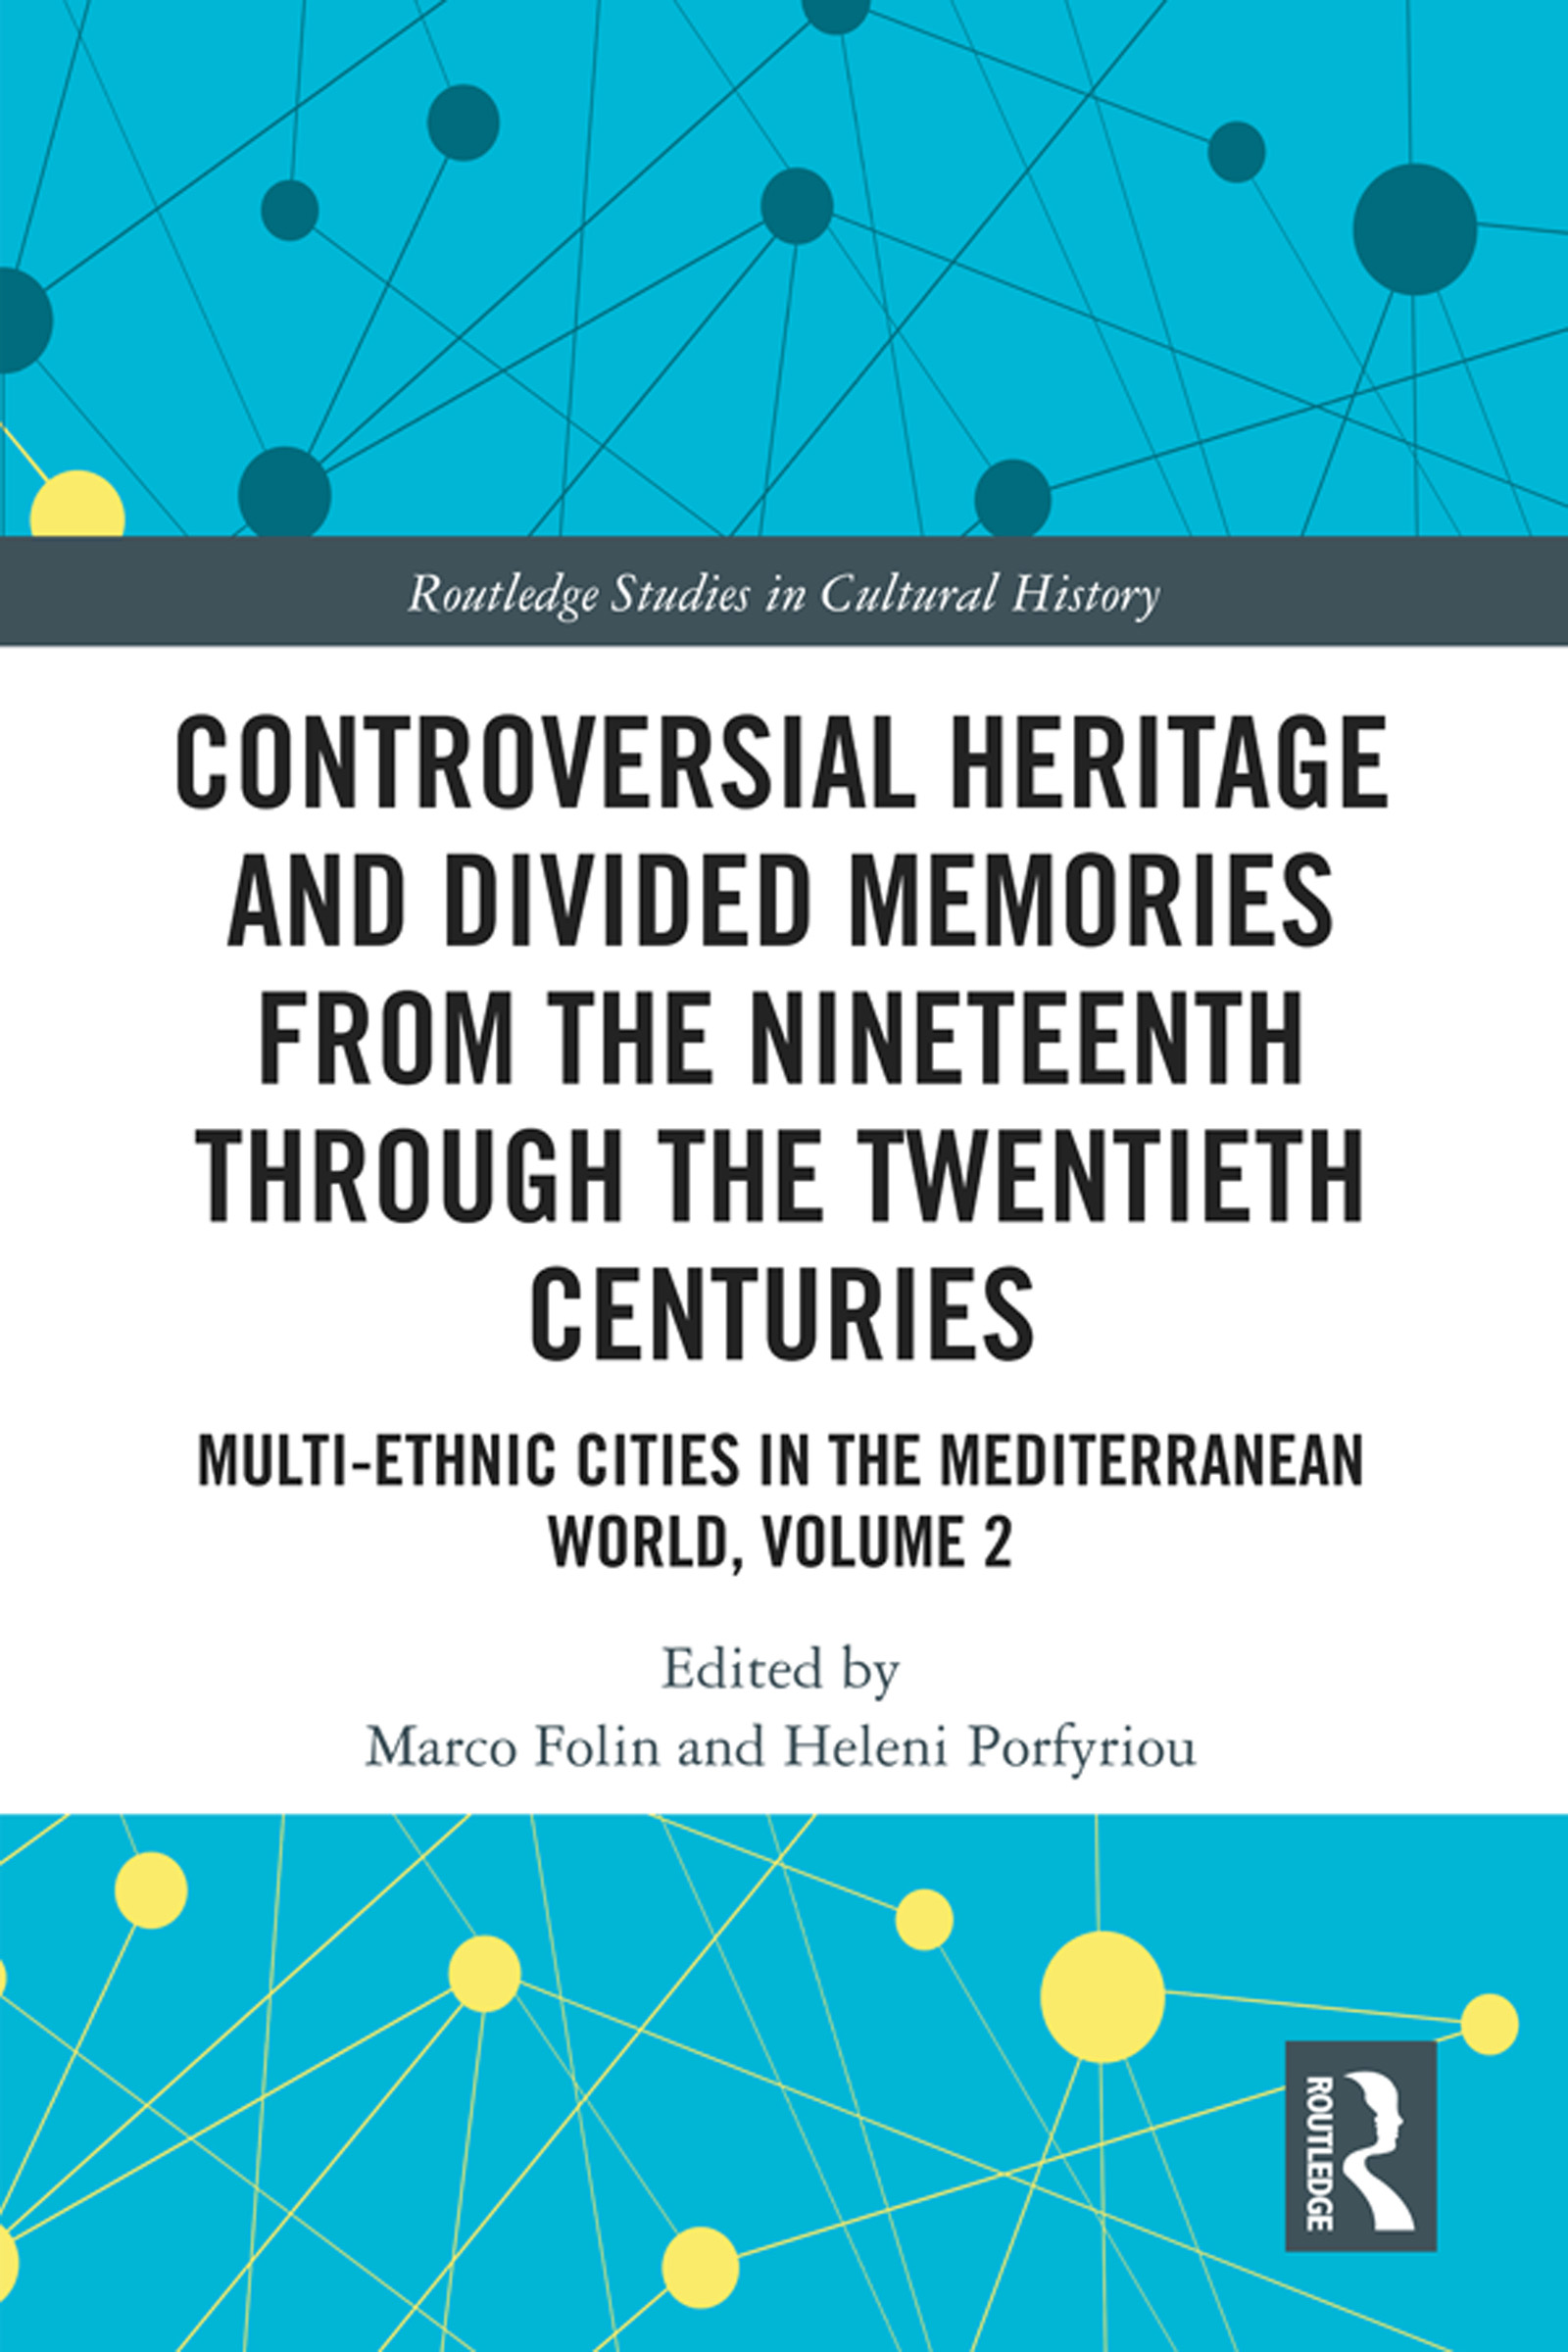 Controversial Heritage and Divided Memories from the Nineteenth Through the Twentieth Centuries